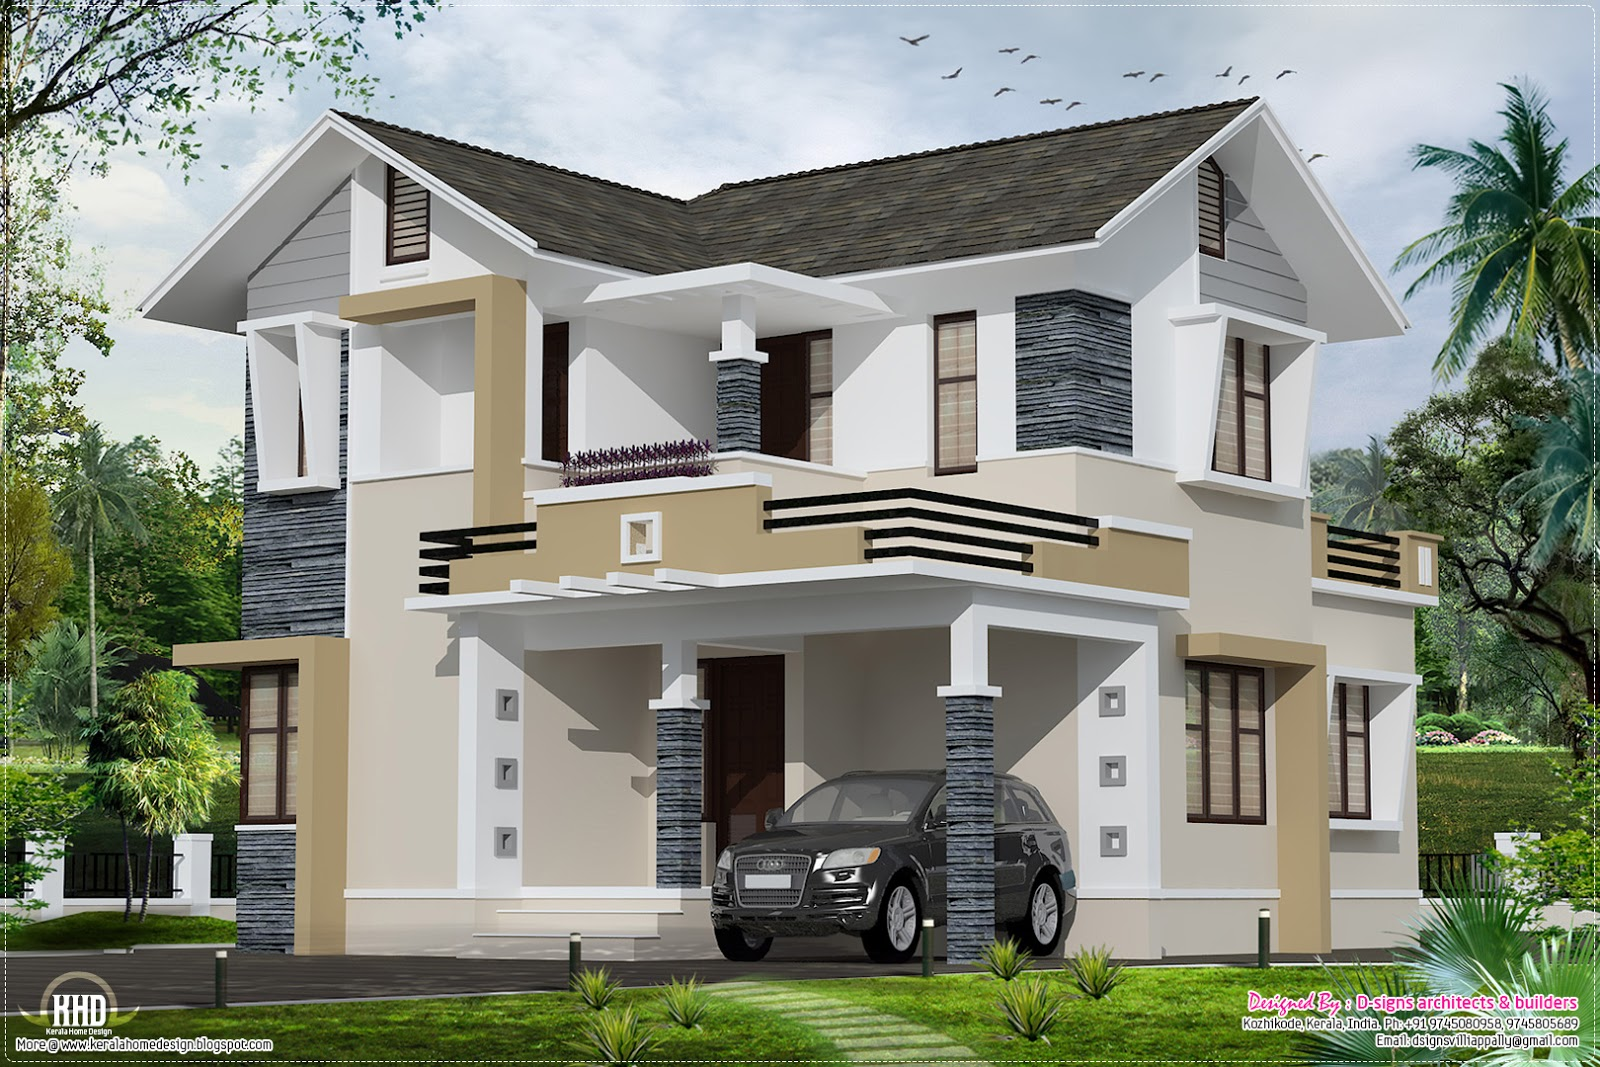 February 2013 kerala home design and floor plans Small home models pictures